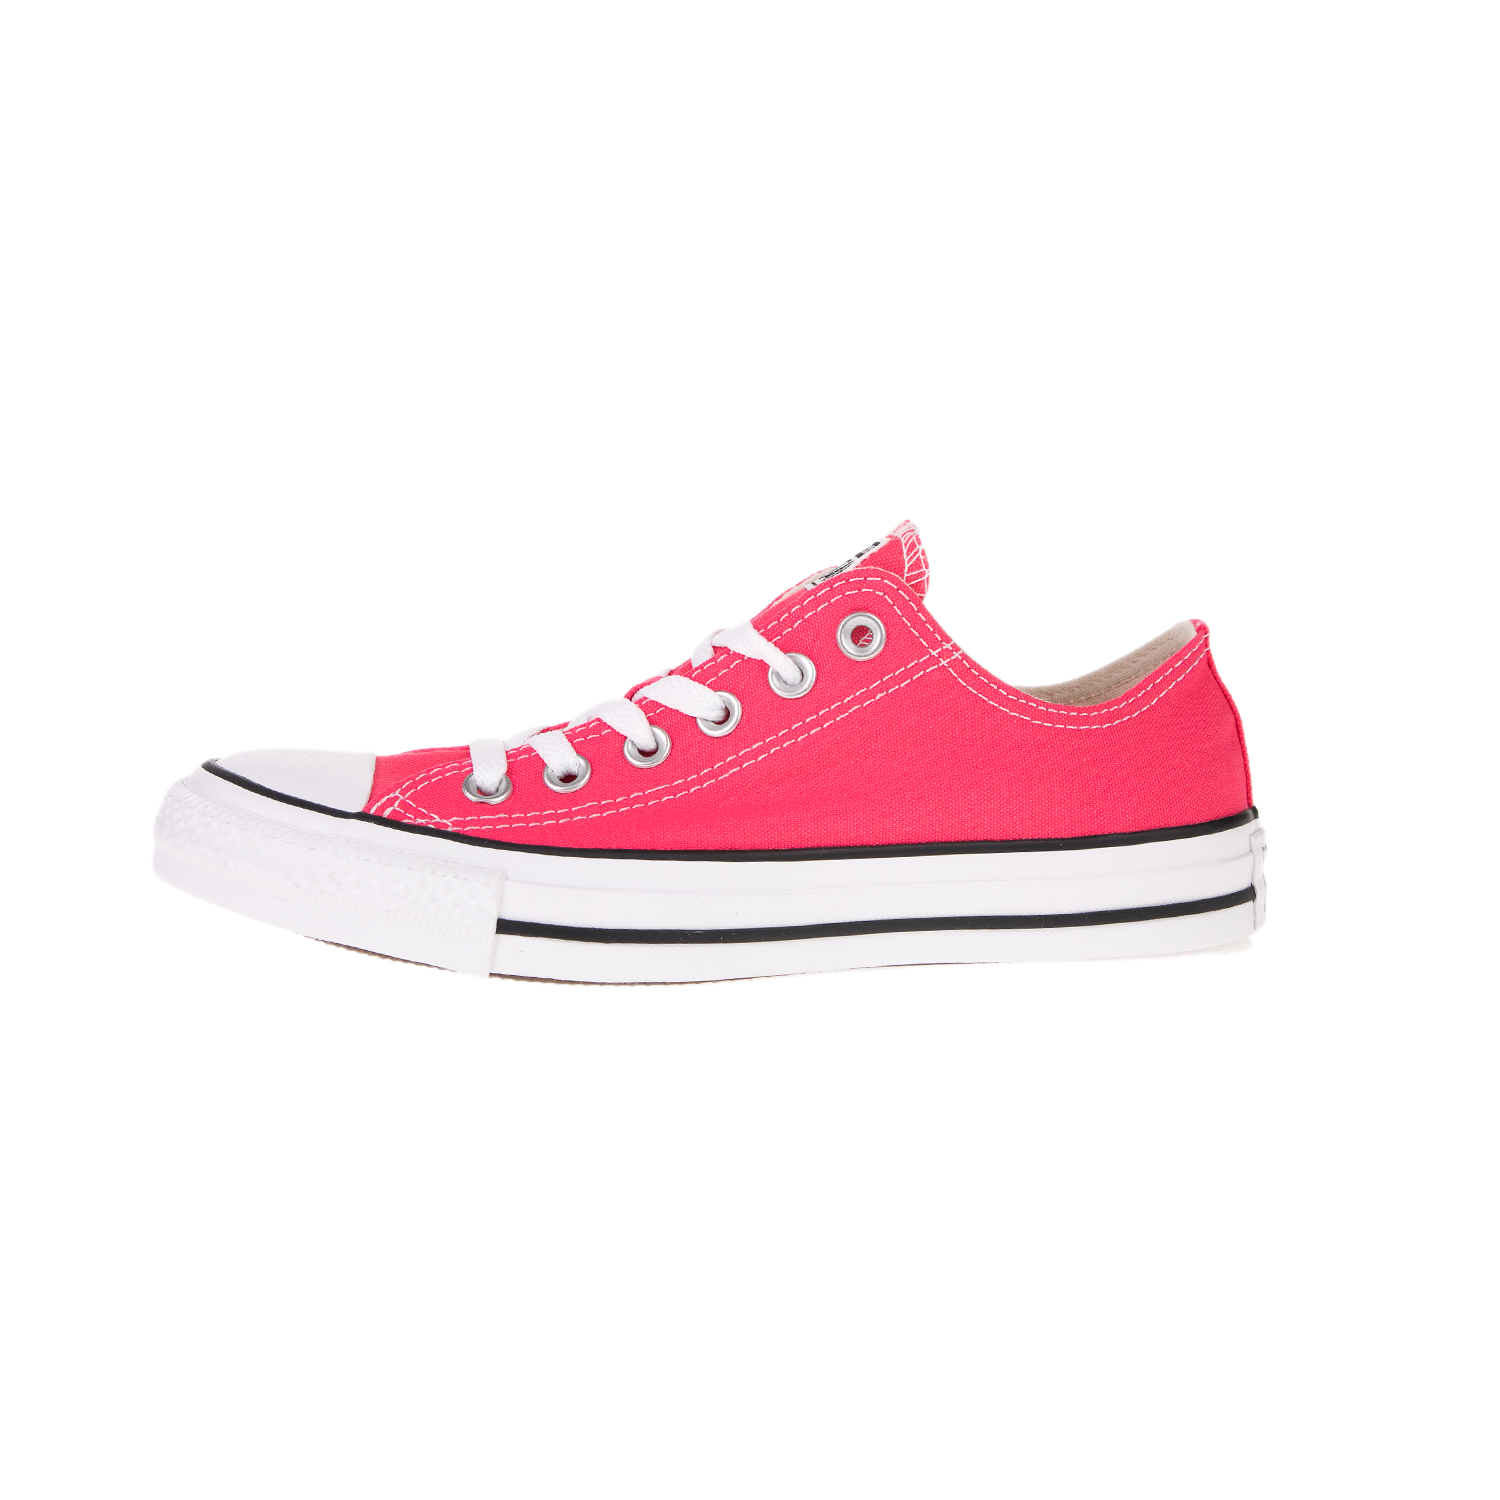 CONVERSE – Unisex sneakers CONVERSE Chuck Taylor All Star ροζ